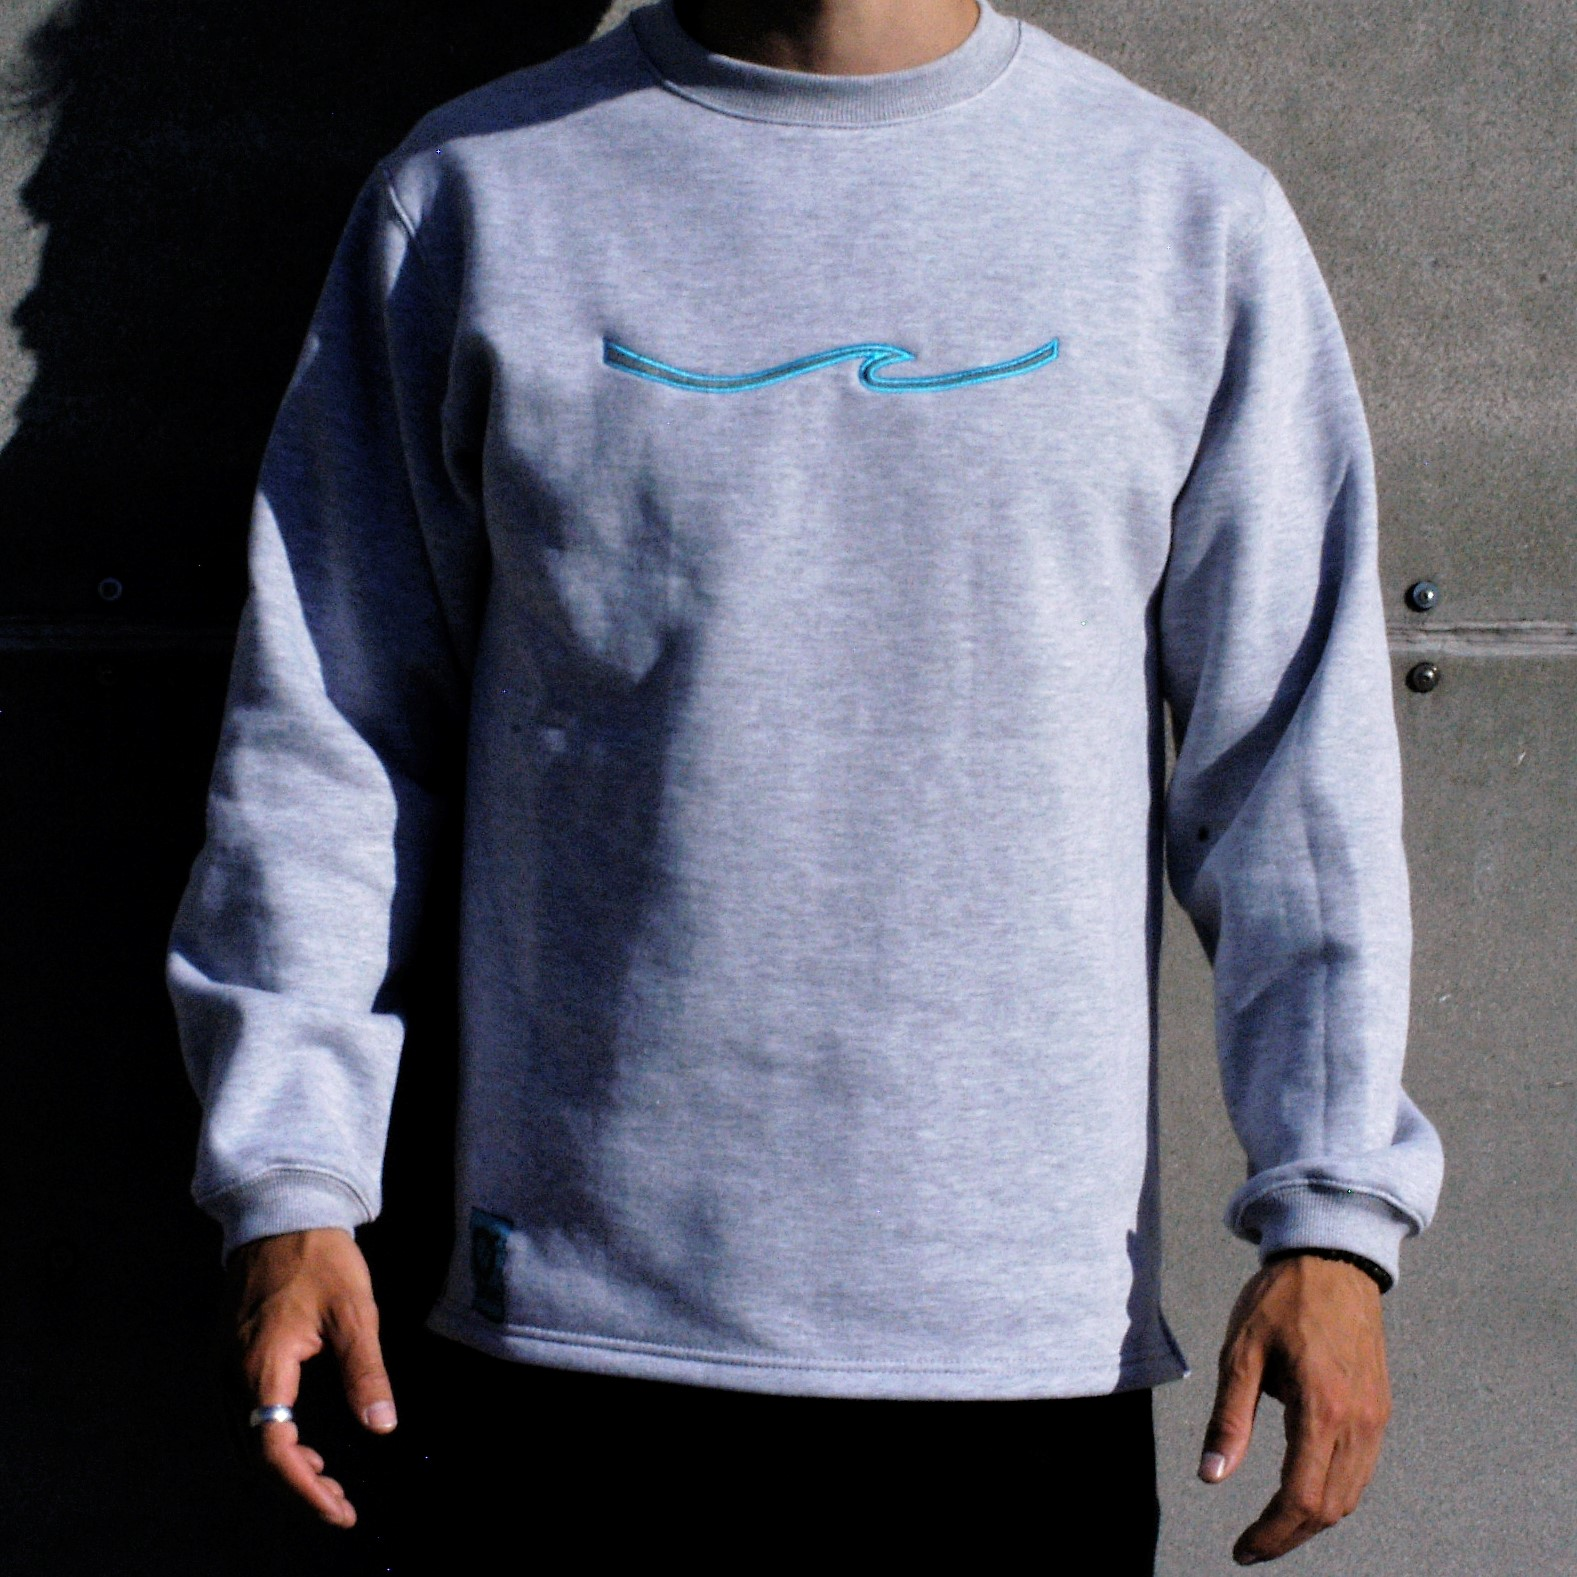 Klitmøller Rig Wear Sweatshirt - Ørhage - Light Grey Melange - Embroidery